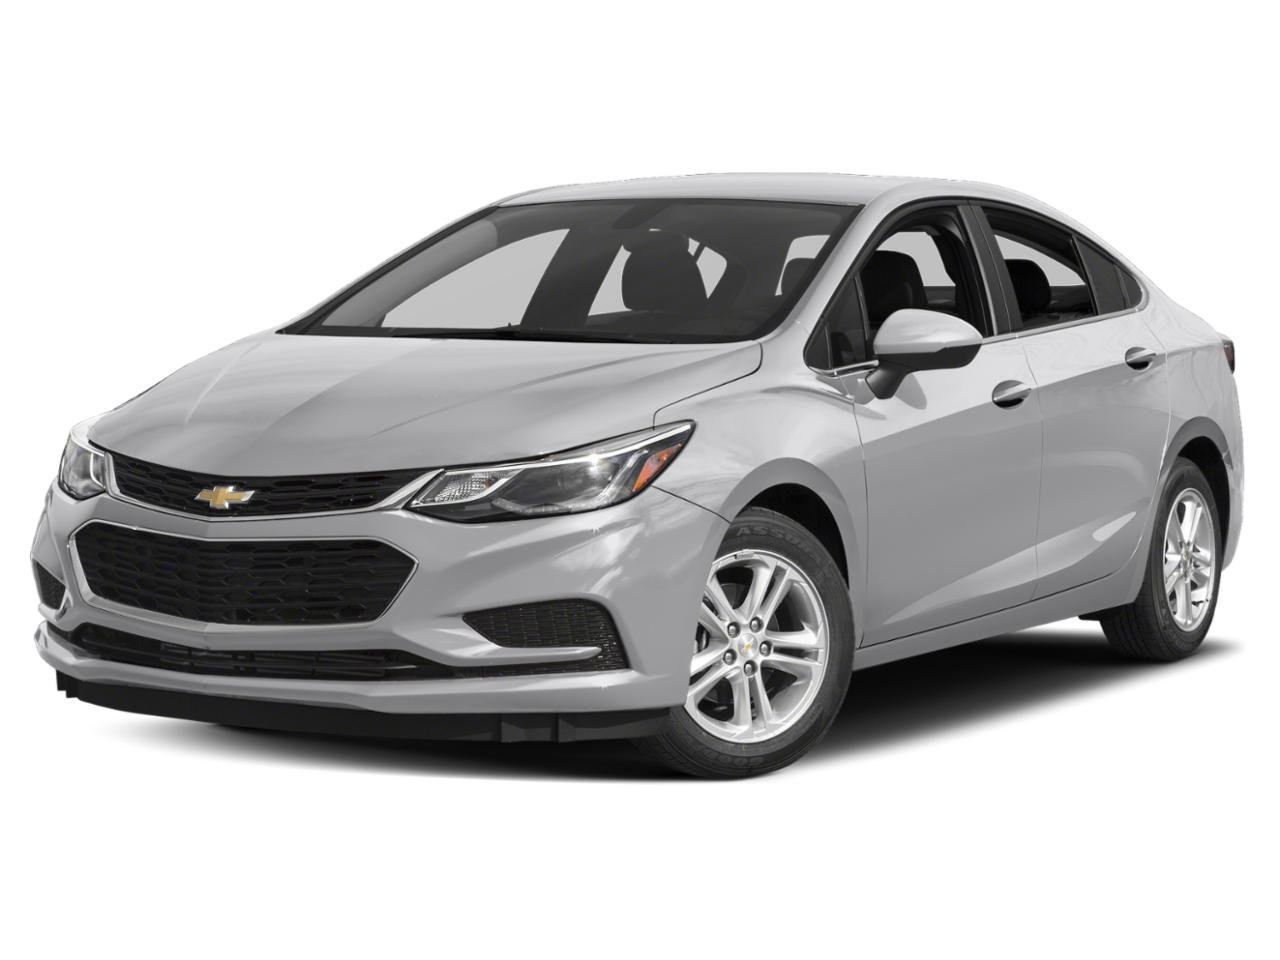 2018 Chevrolet Cruze Vehicle Photo in Altus, OK 73521